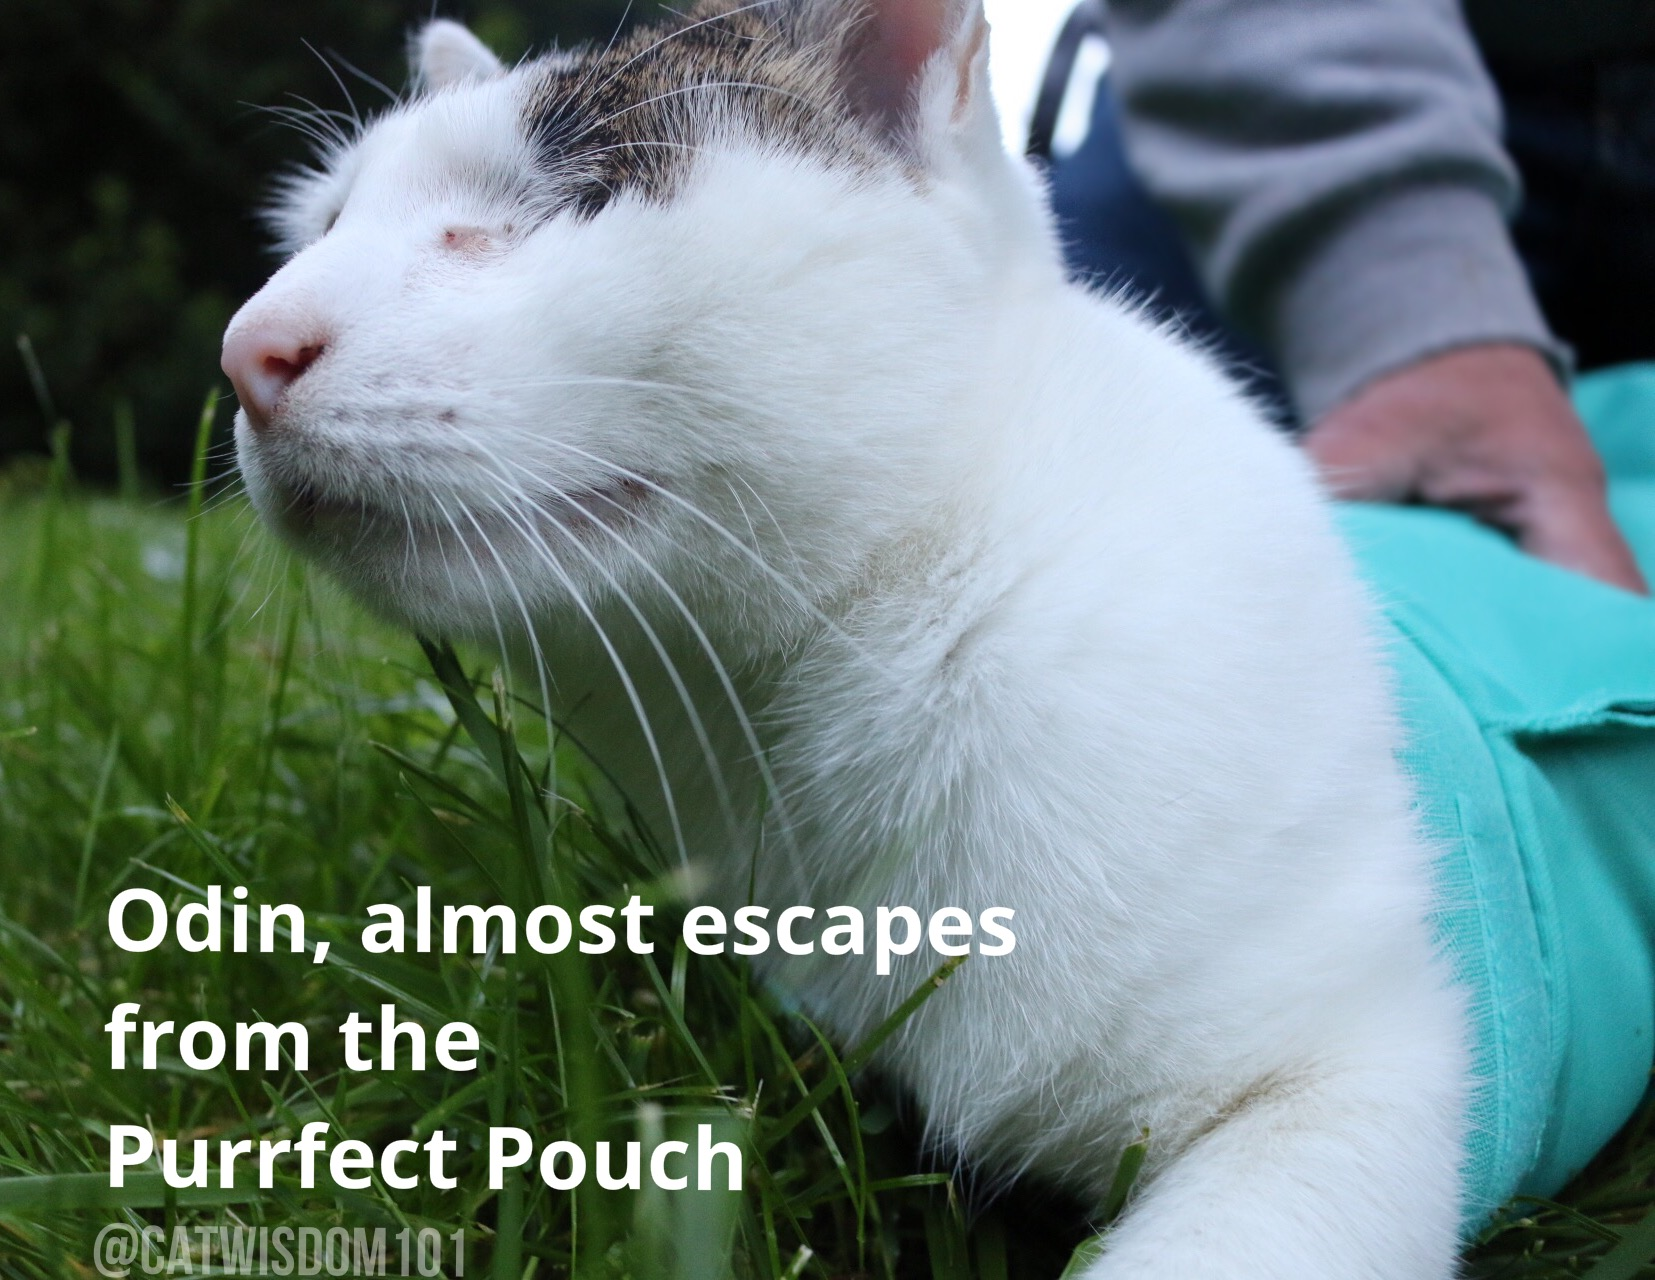 Purrfect pouch